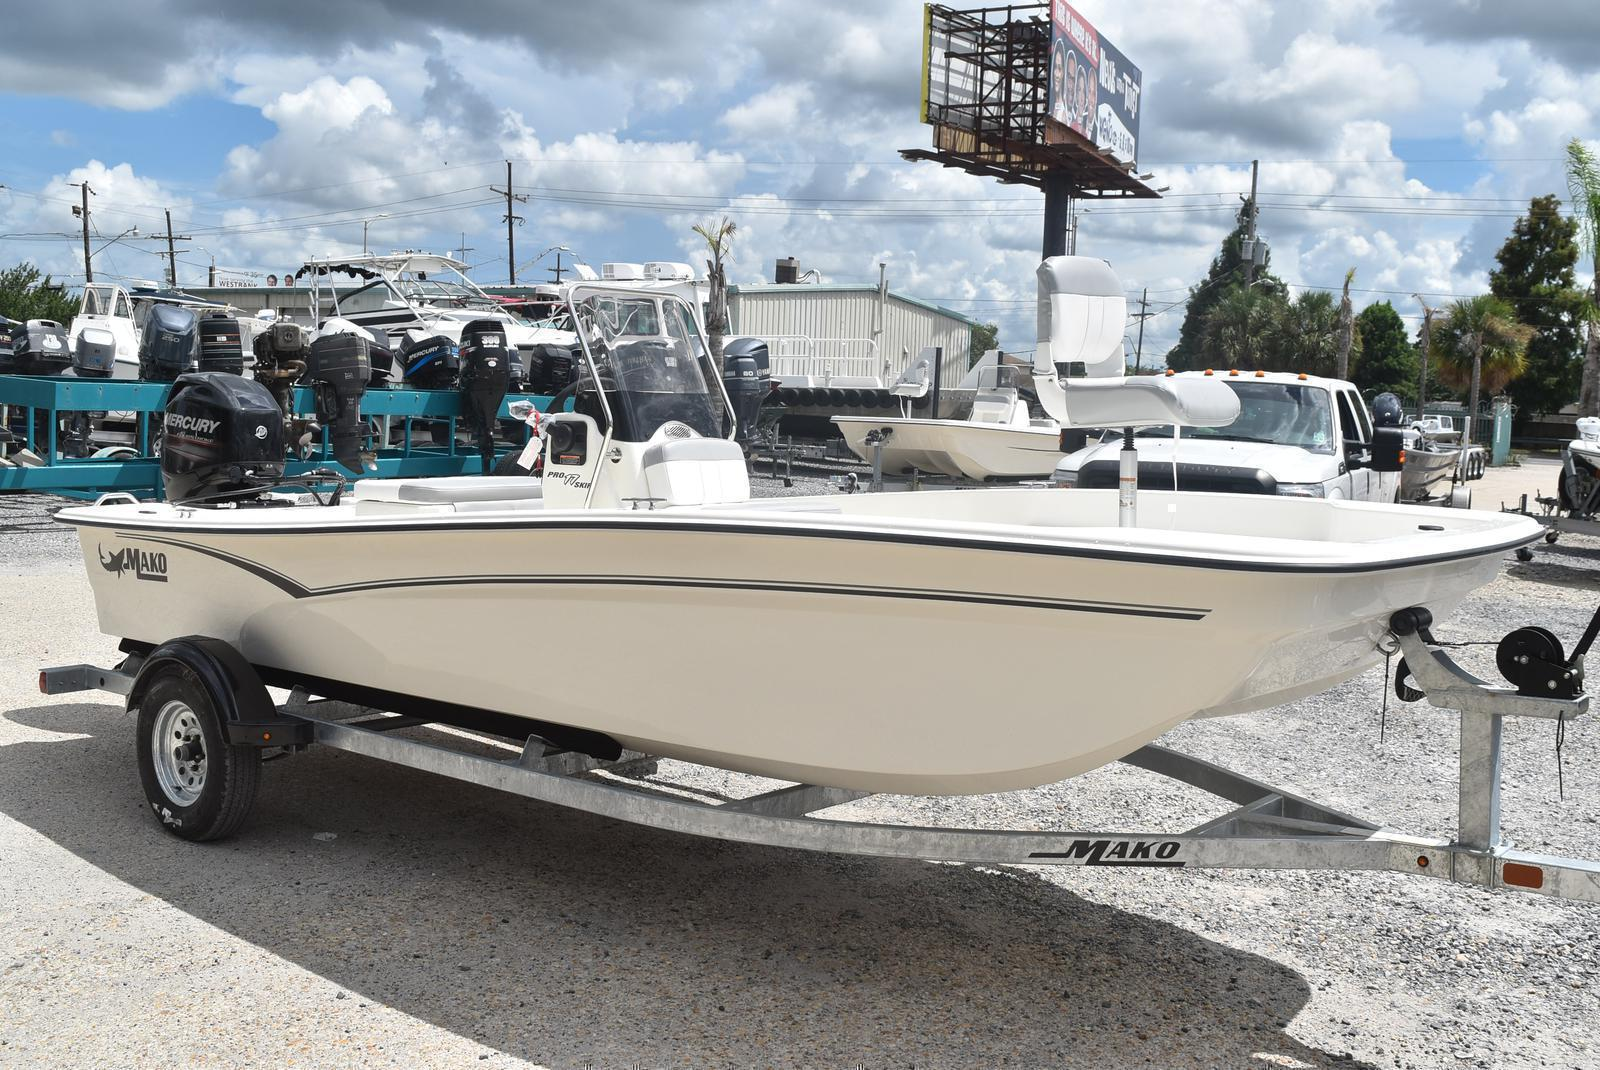 2020 Mako boat for sale, model of the boat is Pro Skiff 17, 75 ELPT & Image # 694 of 702